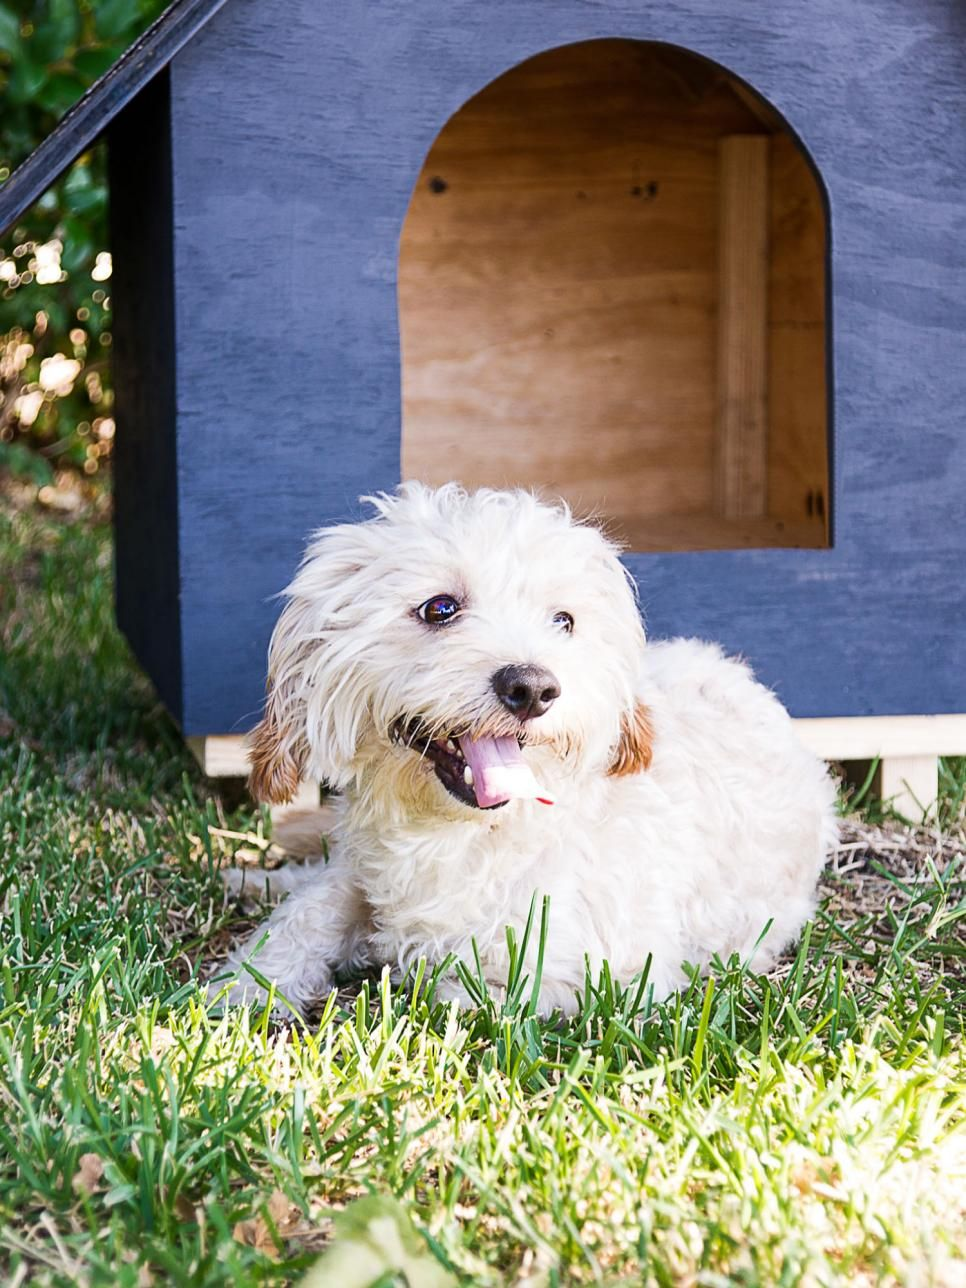 How To Build A Dog House Cat House Diy Dog Houses Build A Dog